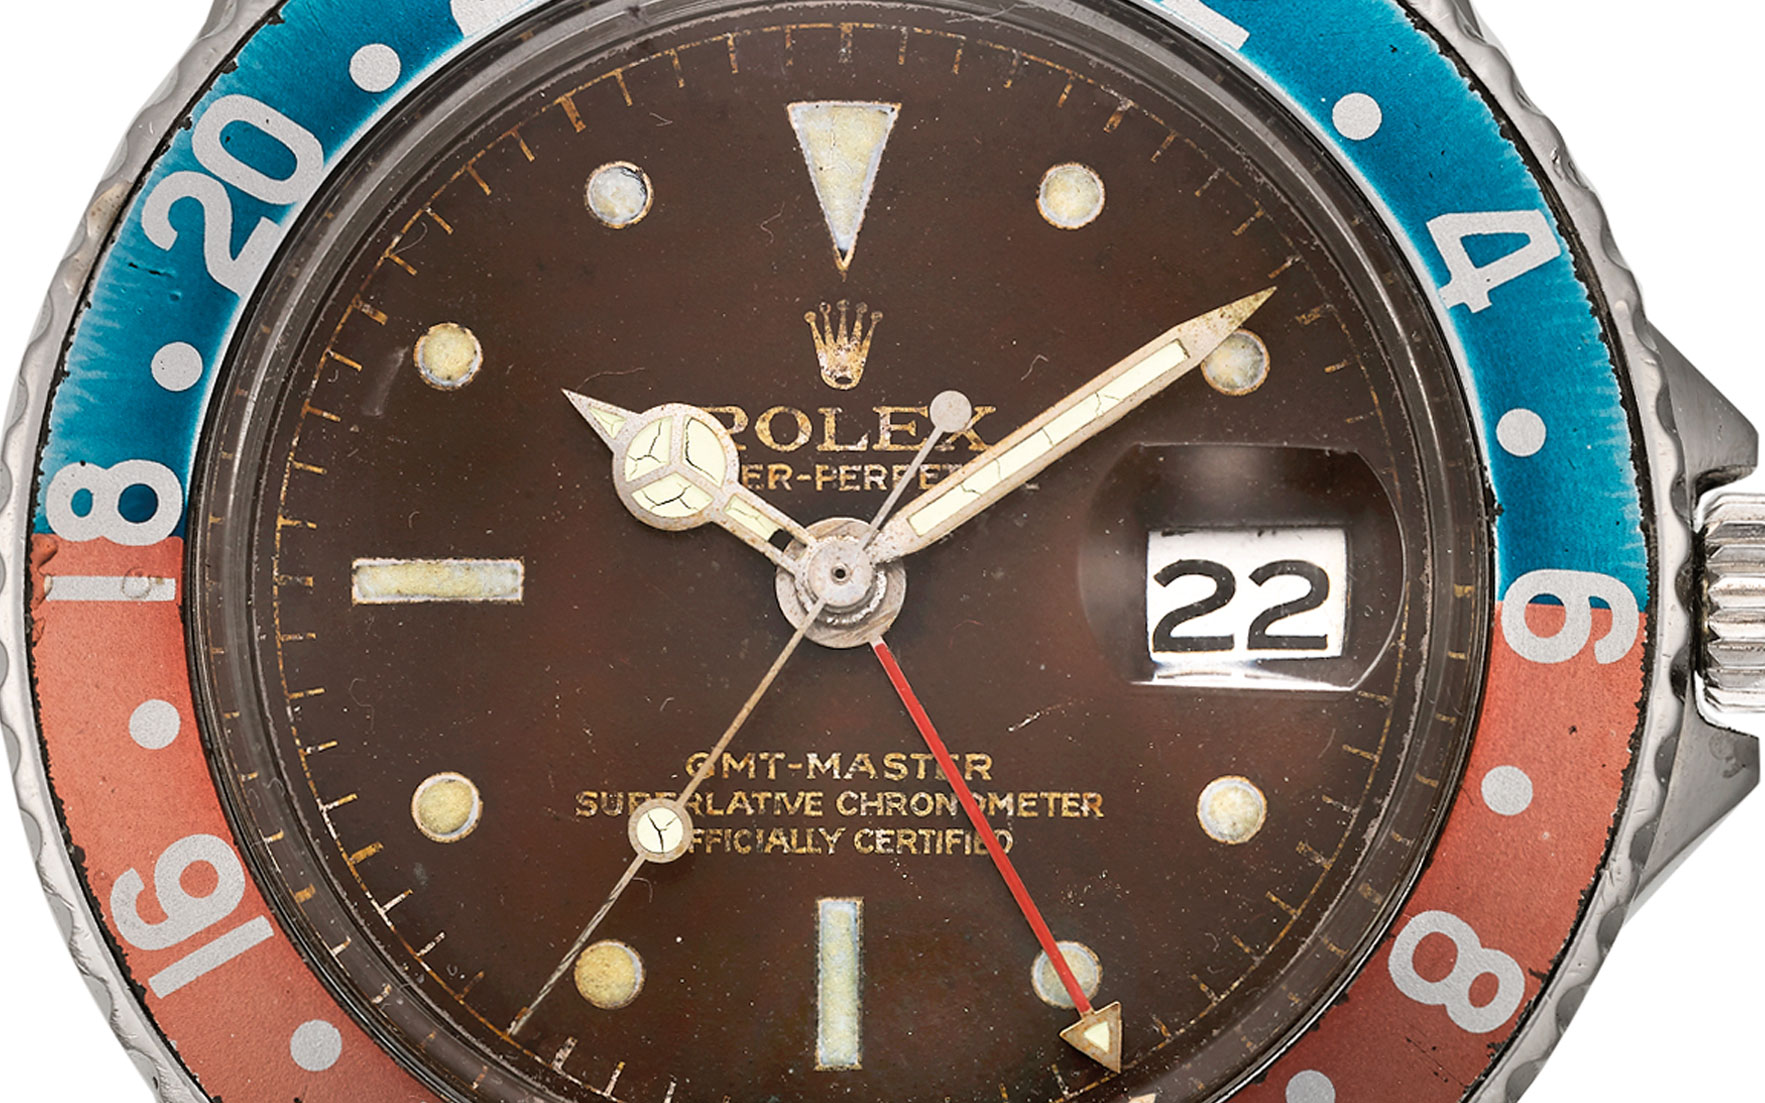 Aged to perfection — The patina trend in watches